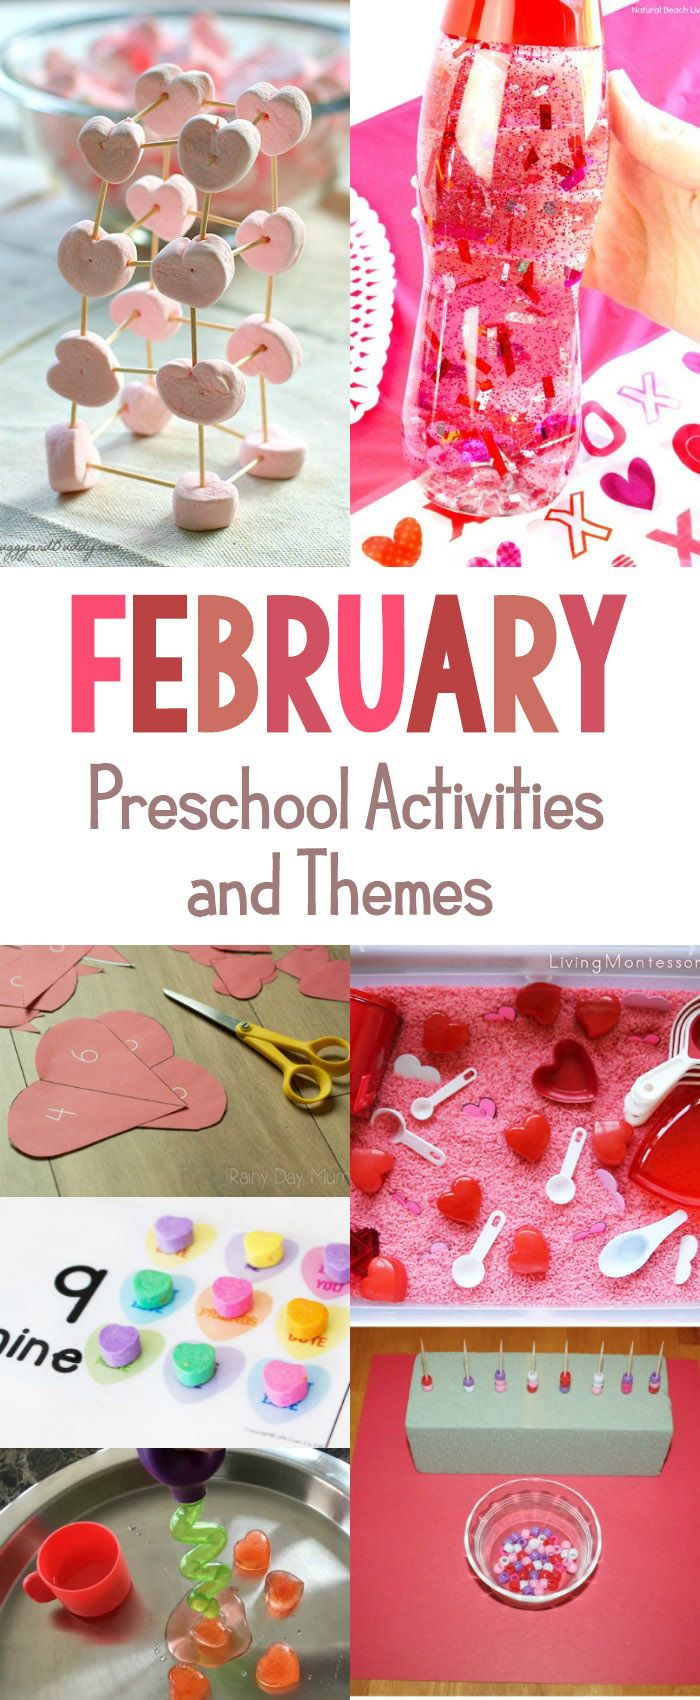 The Best February Preschool Activities and Themes for Preschool, fun Valentine's Day hands-on activities, heart crafts, Valentine's Day STEM, filling your calendar with random acts of kindness ideas, groundhog day preschool, This page is filled with great preschool activities and themes, February Themes for Kindergarten, February Theme Ideas, preschool themes, #preschool #preschoolactivities